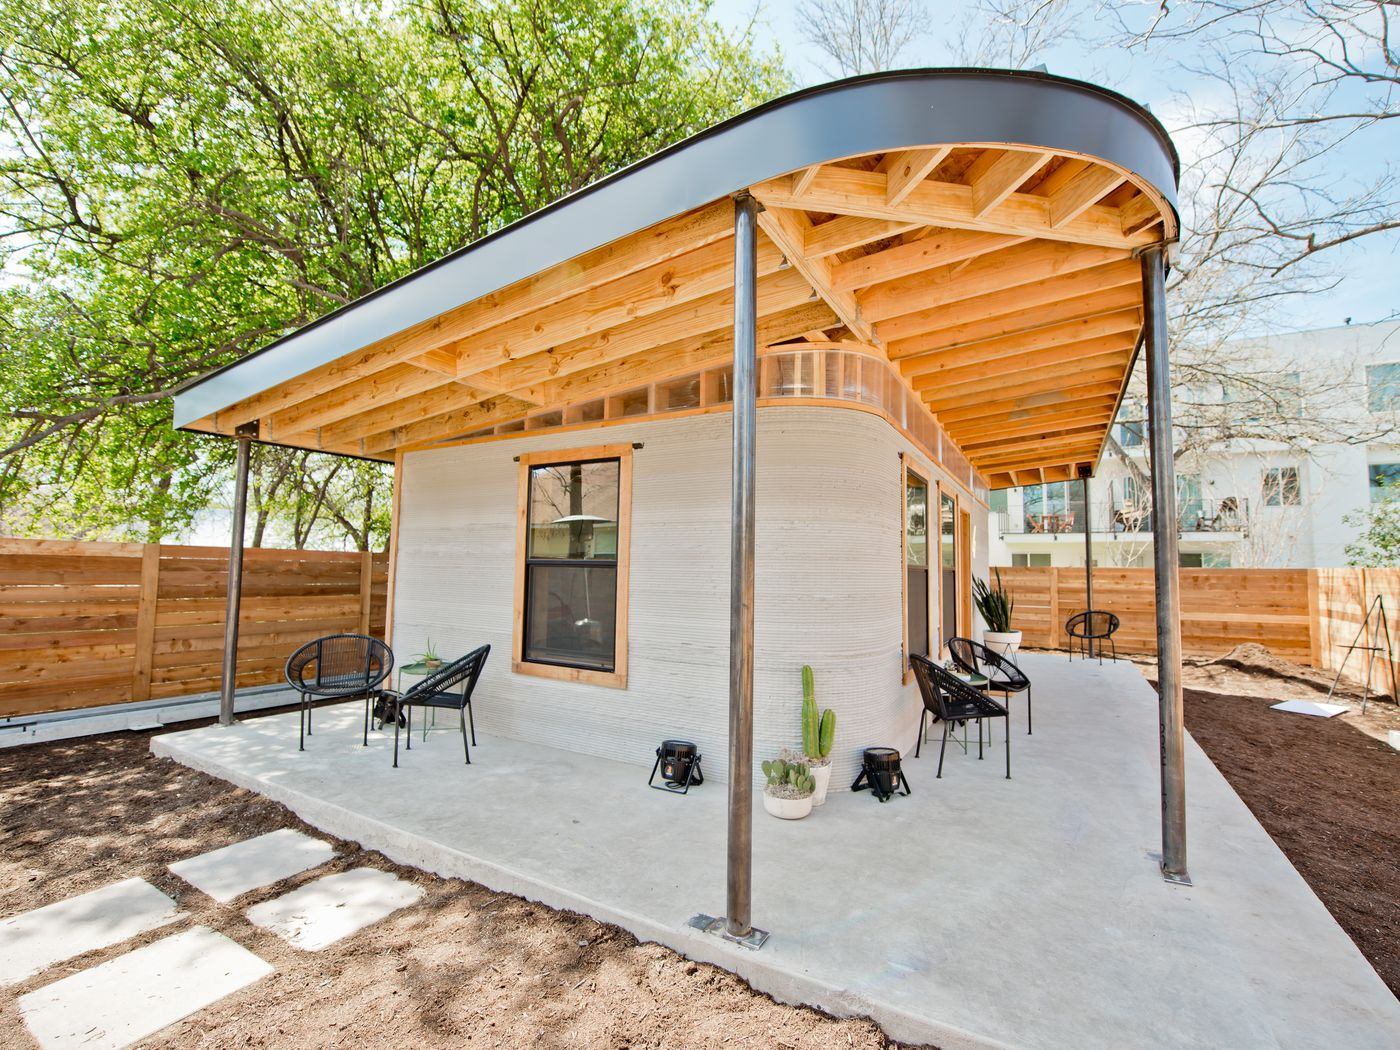 The tiny house made with a 3D printer at SXSW is adorable